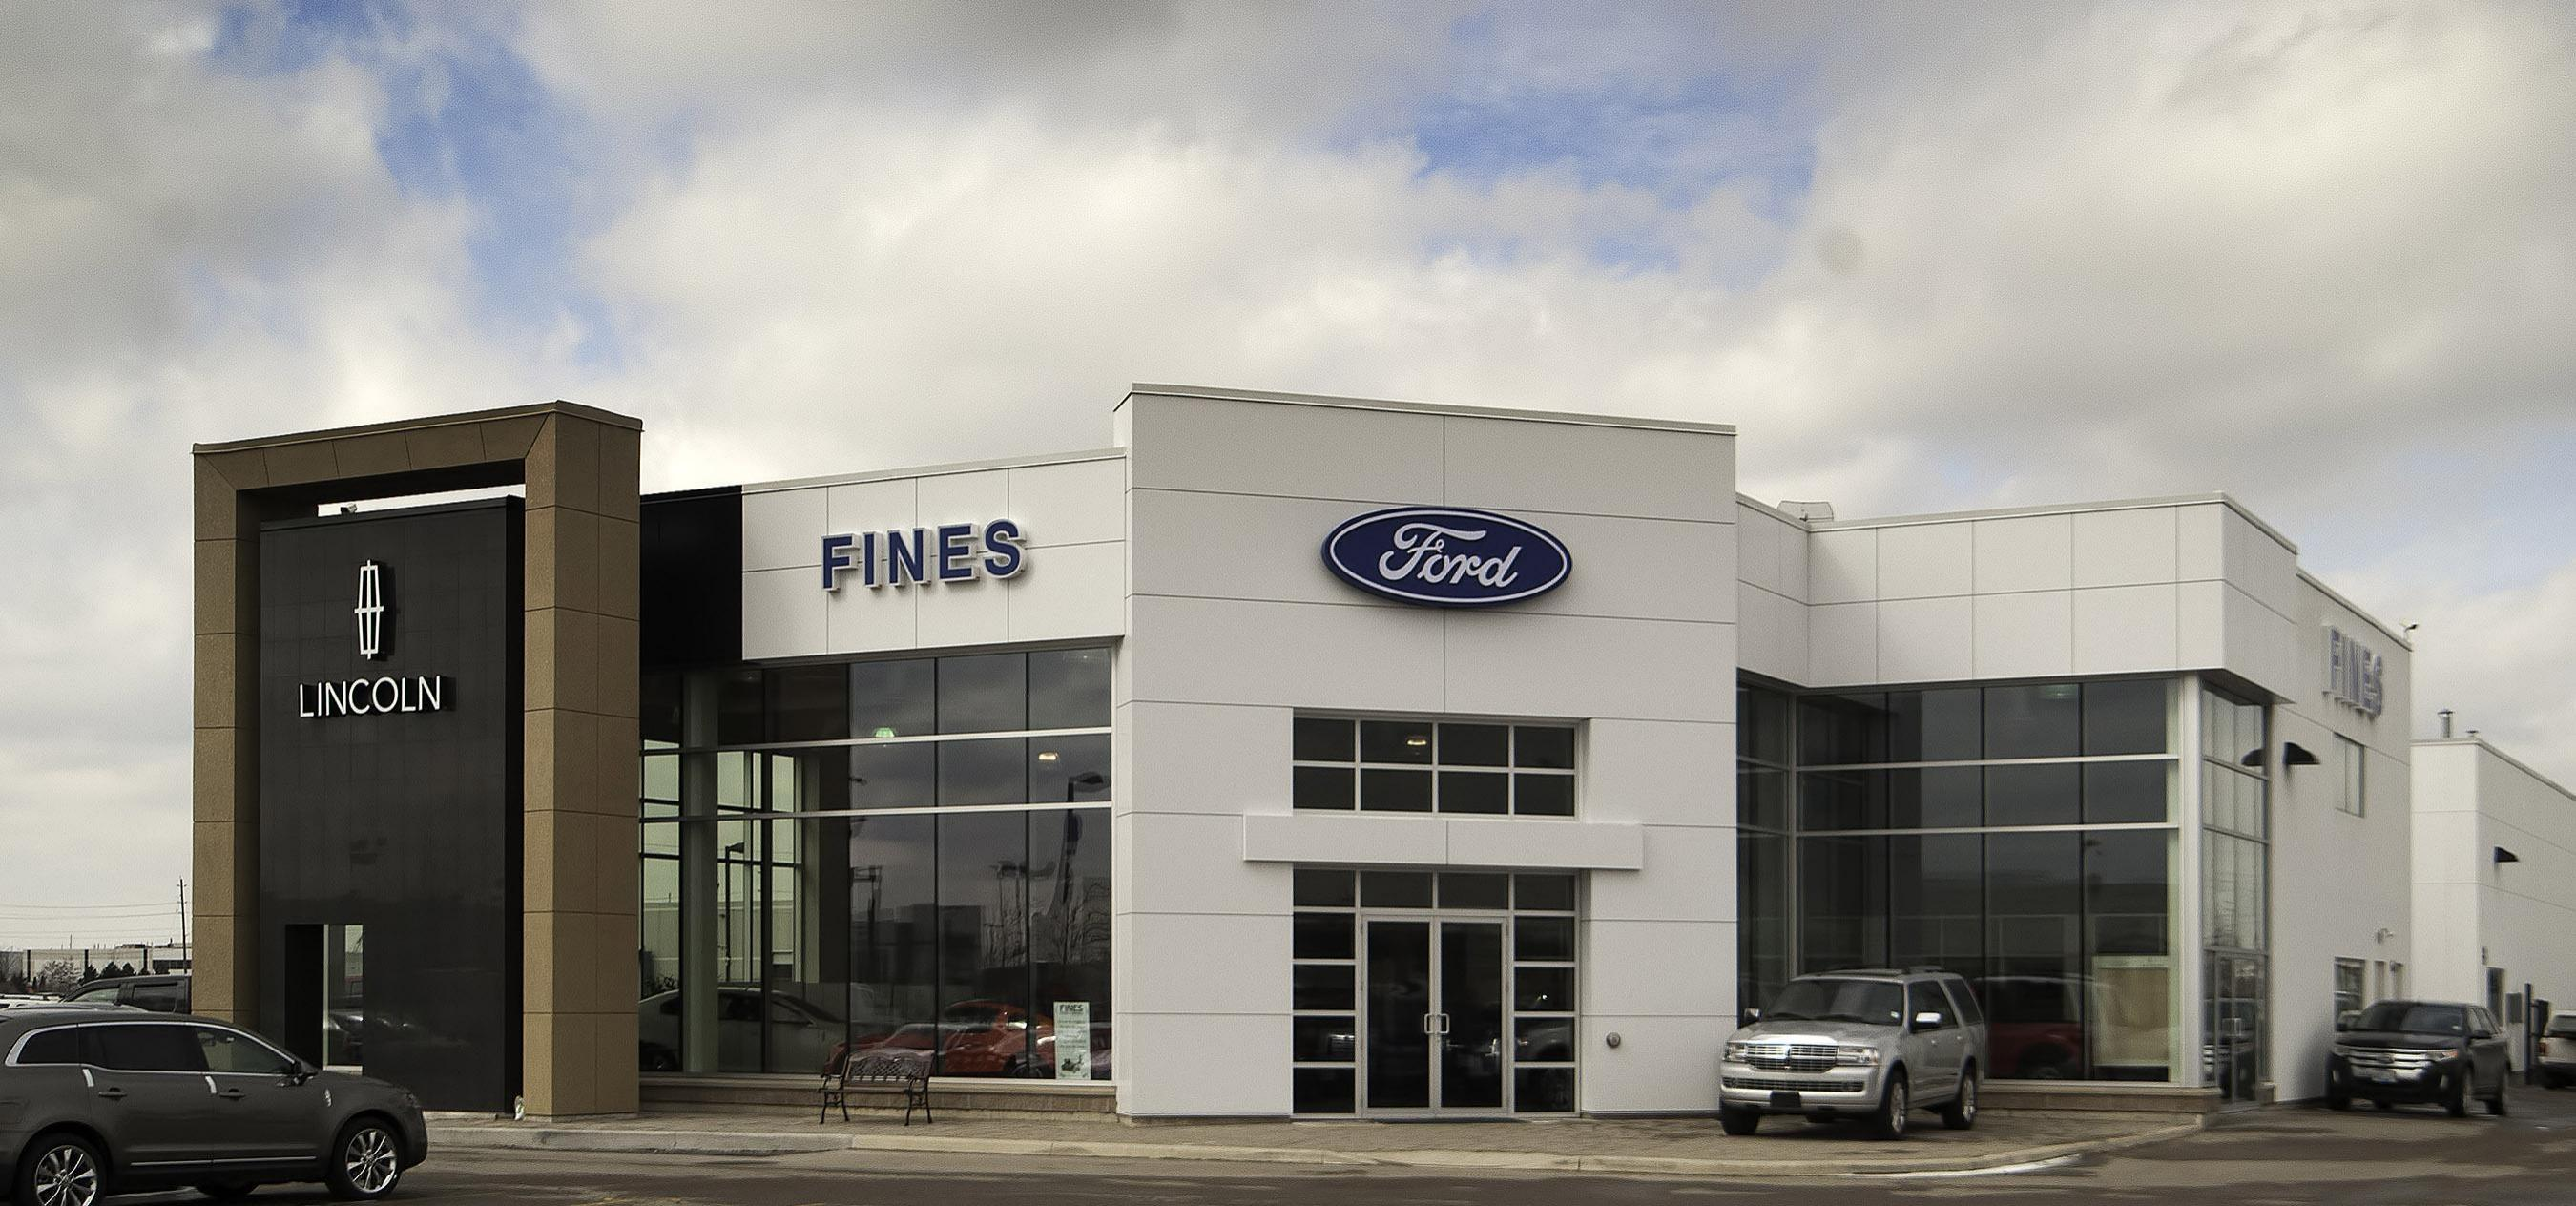 Fiens Ford Lincoln Dealership Photo